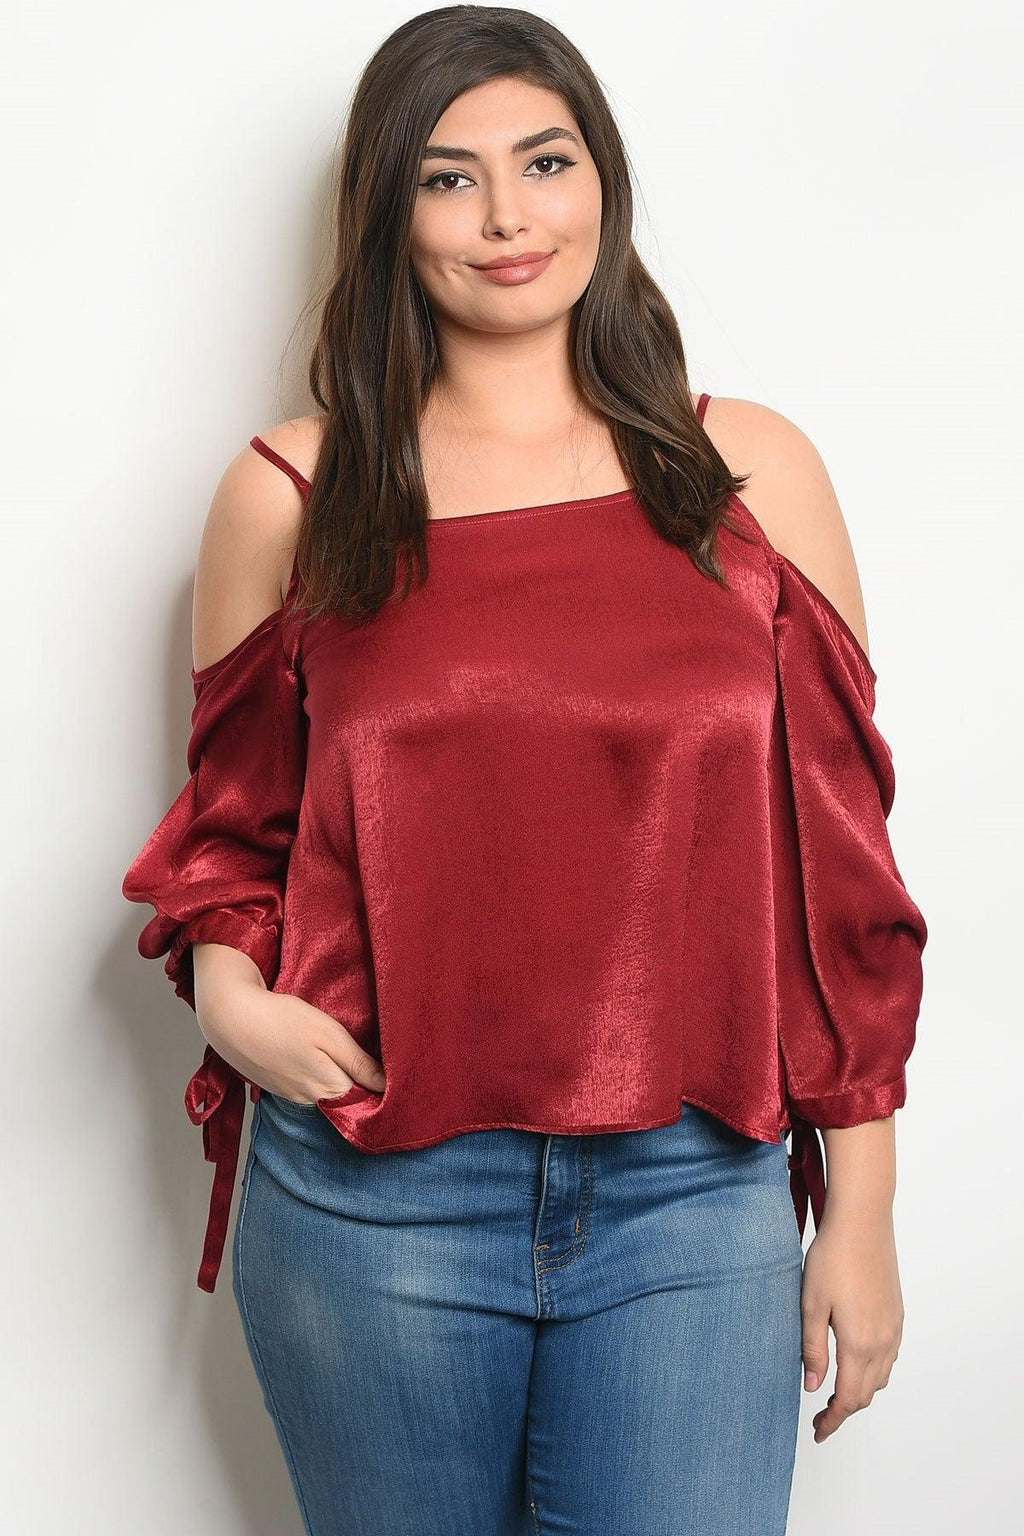 Royal Curves Amora Burgundy Blouse - My Royal Closet